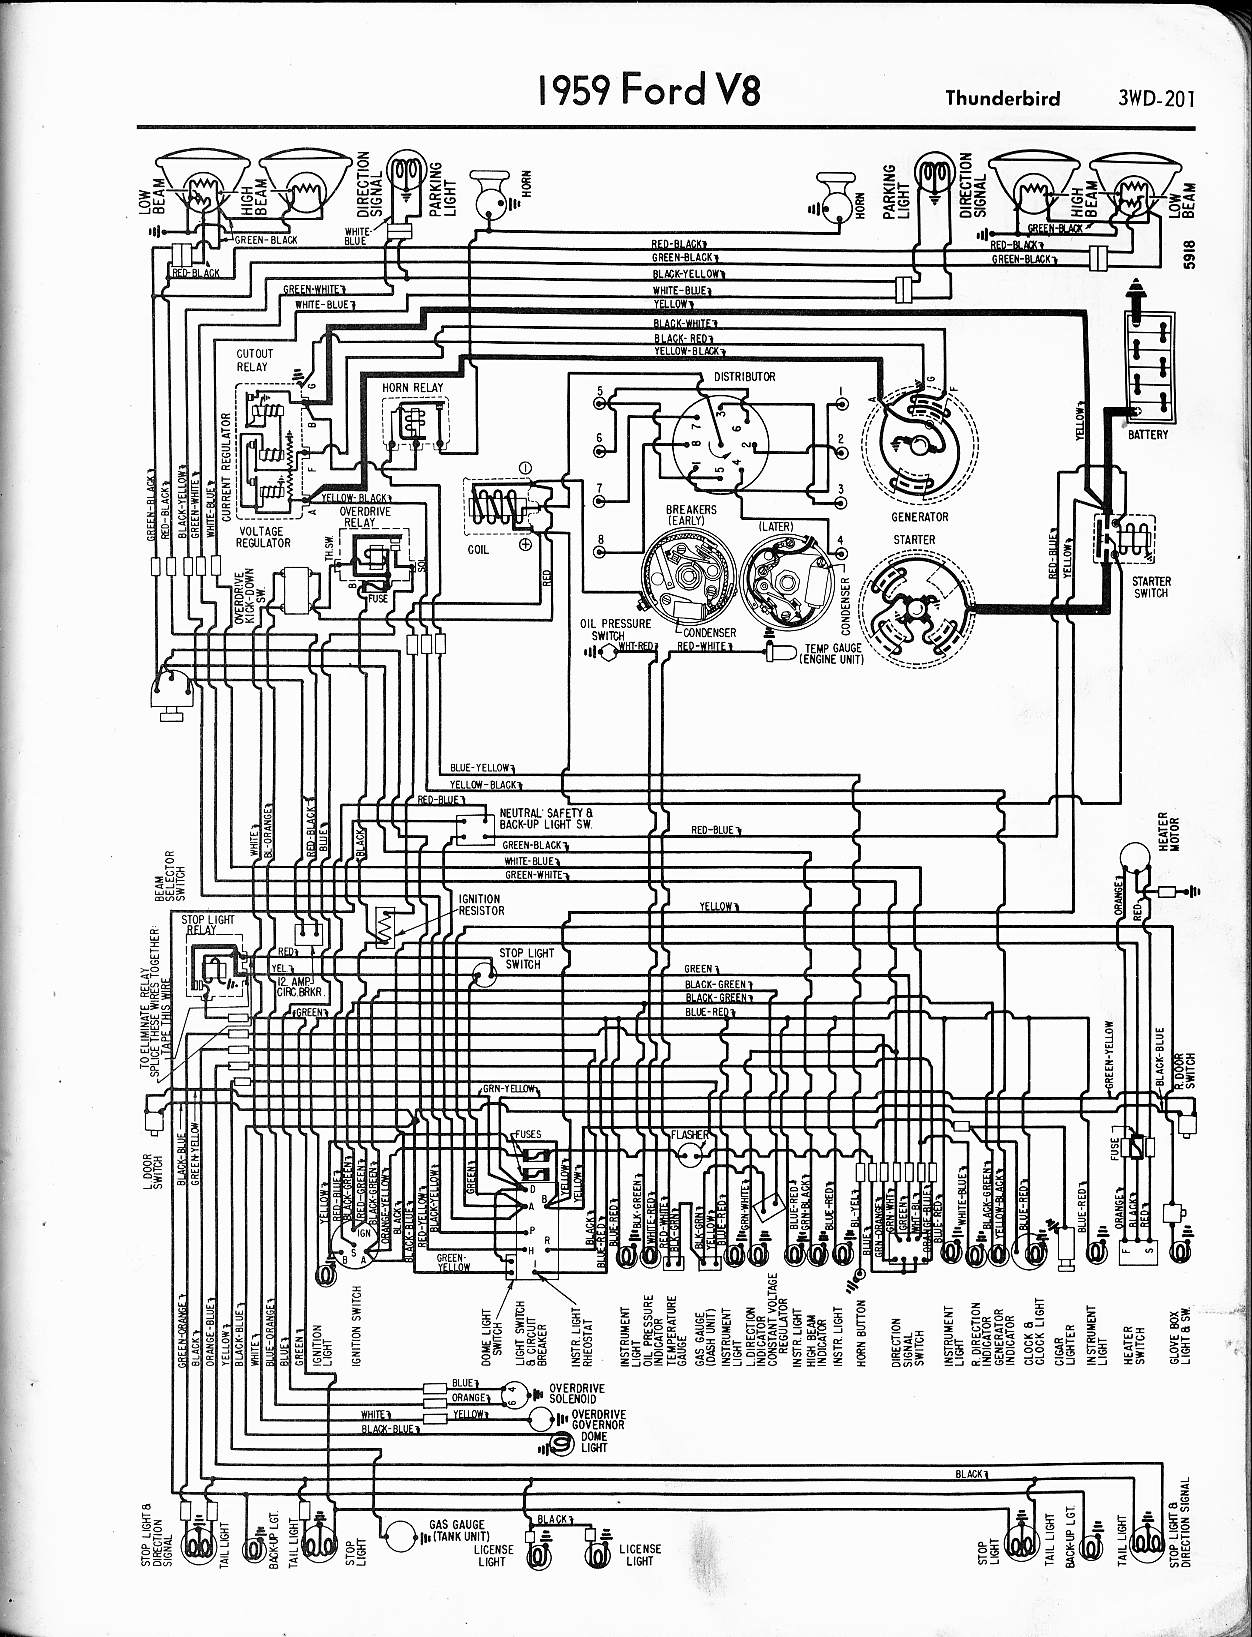 MWire5765 201 57 65 ford wiring diagrams wiring diagrams for free at webbmarketing.co